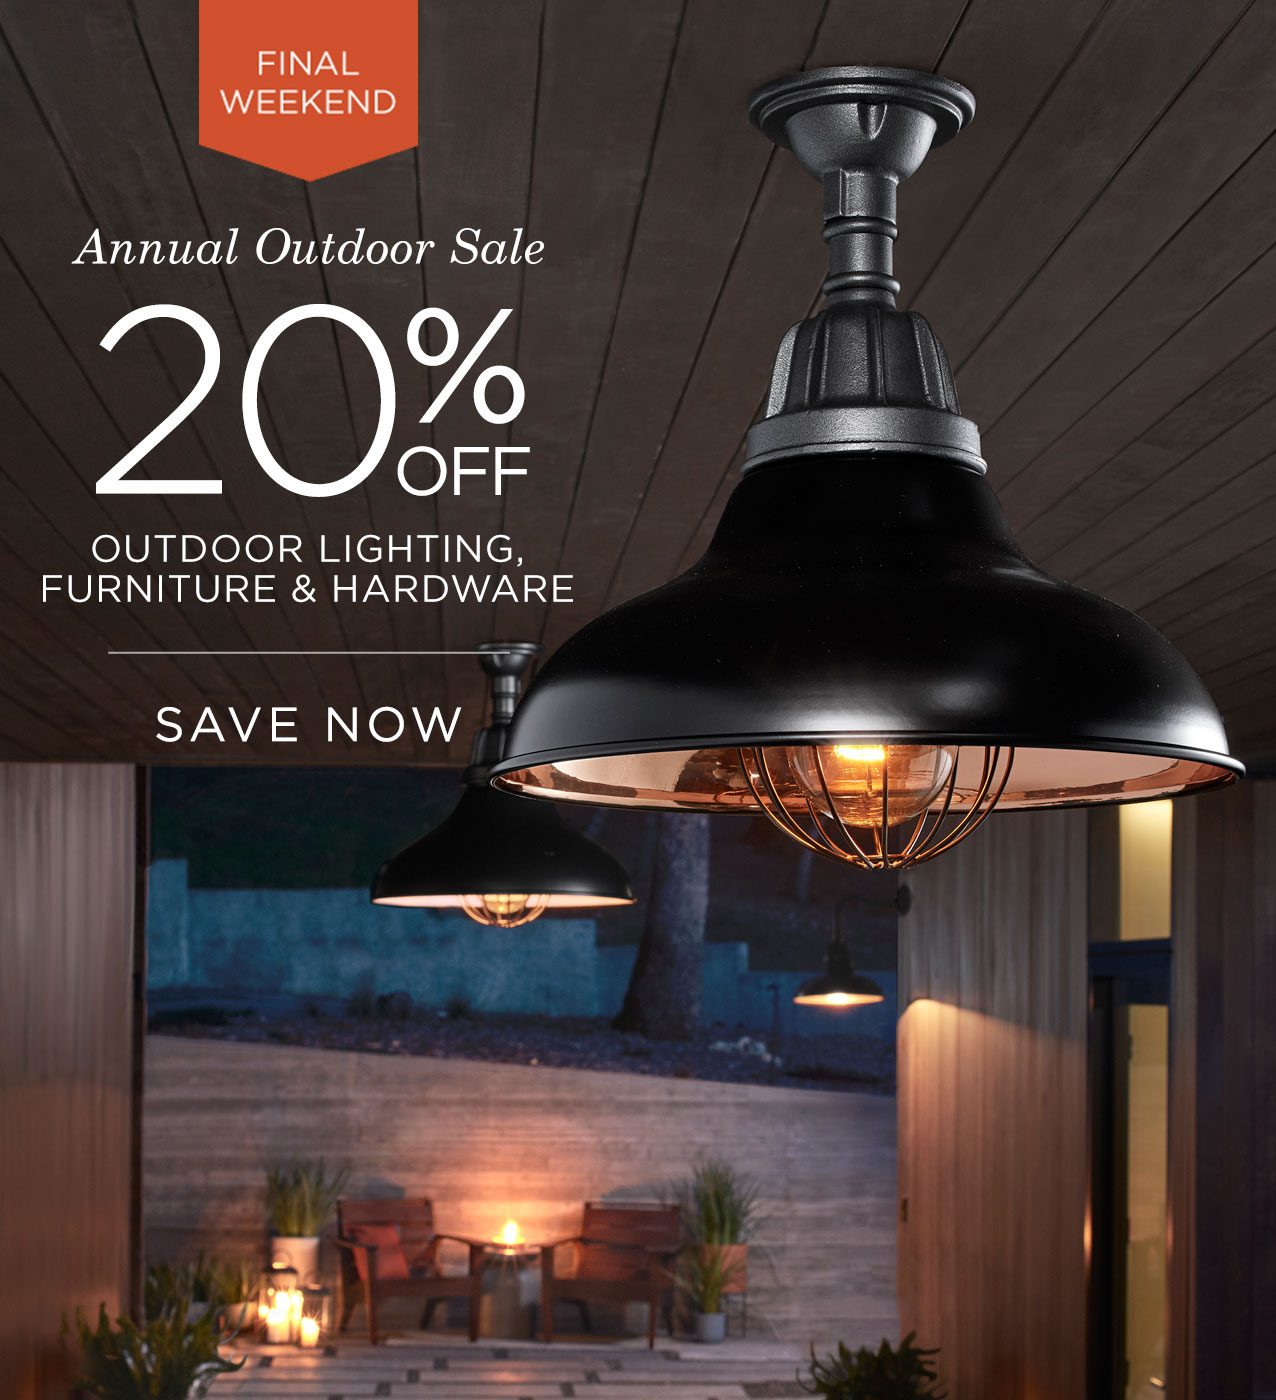 Save 20% on Outdoor